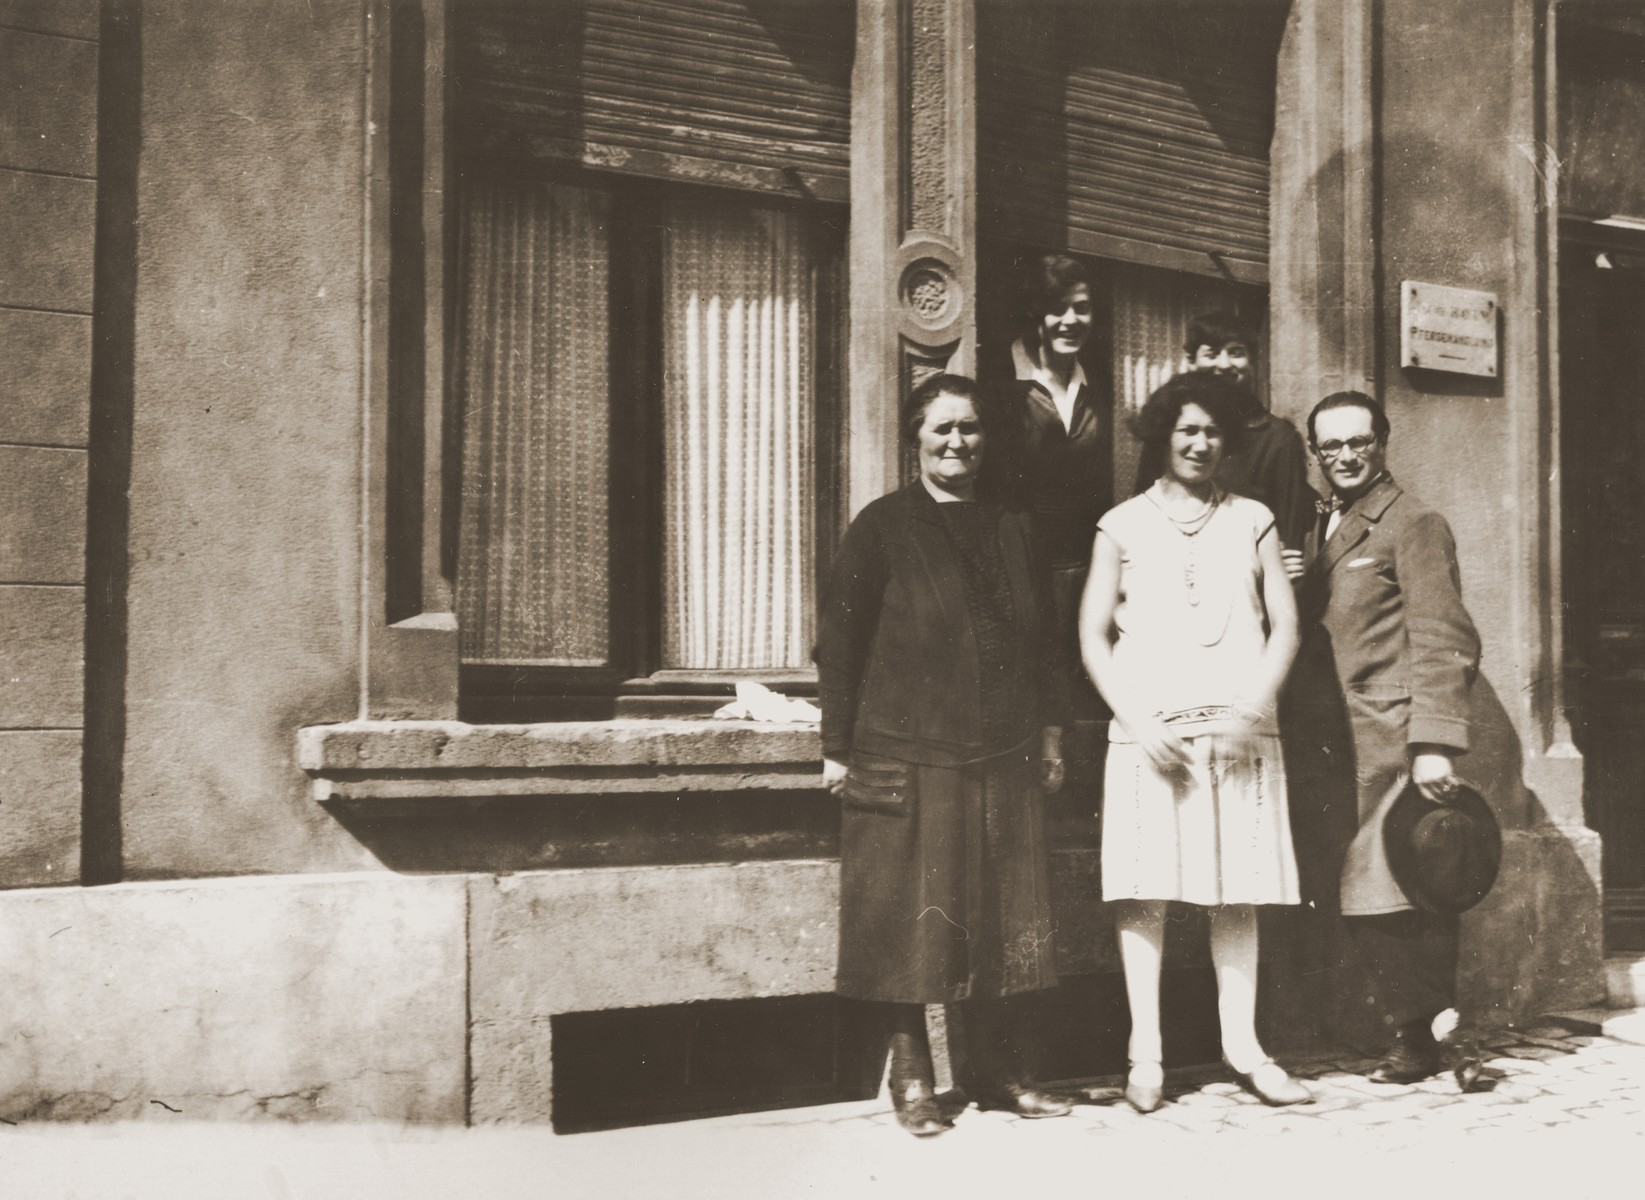 Charlotte Michel poses with members of the Hayum family outside on a street in Luxembourg.    The Hayums were cousins of Jakob Michel.